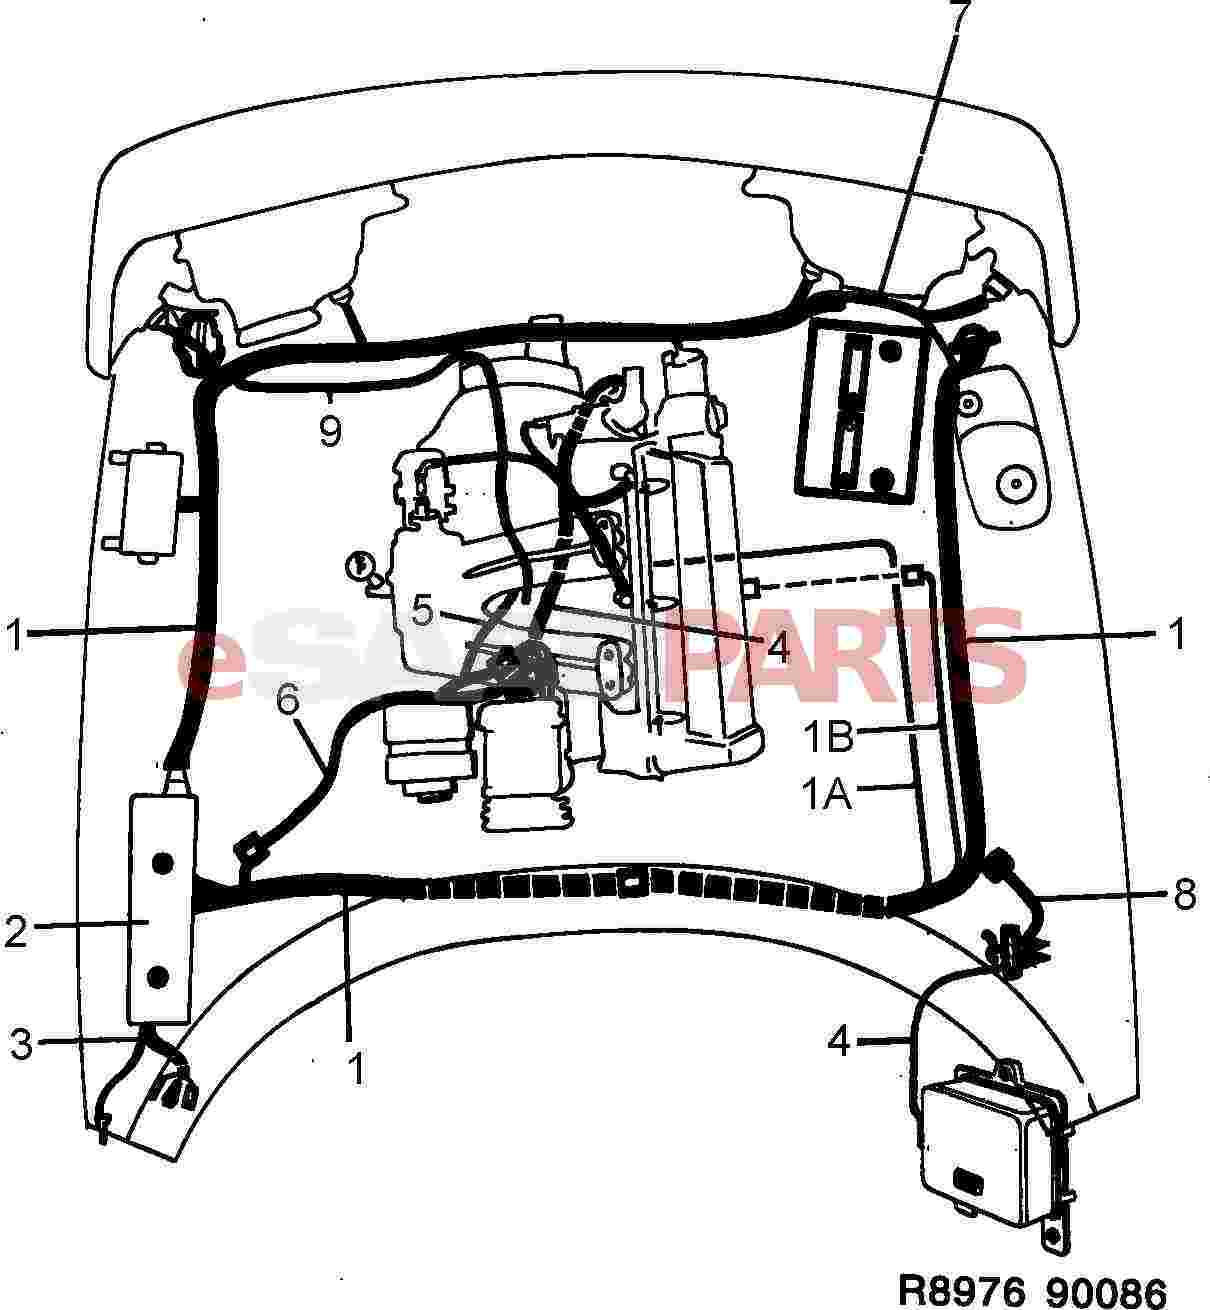 Saab 900 Wiring Harness Data Schematic Scosche Diagram 2006 Ford Mustang Esaabparts Com U003e Electrical Parts Rh Avalanche Car Stereo